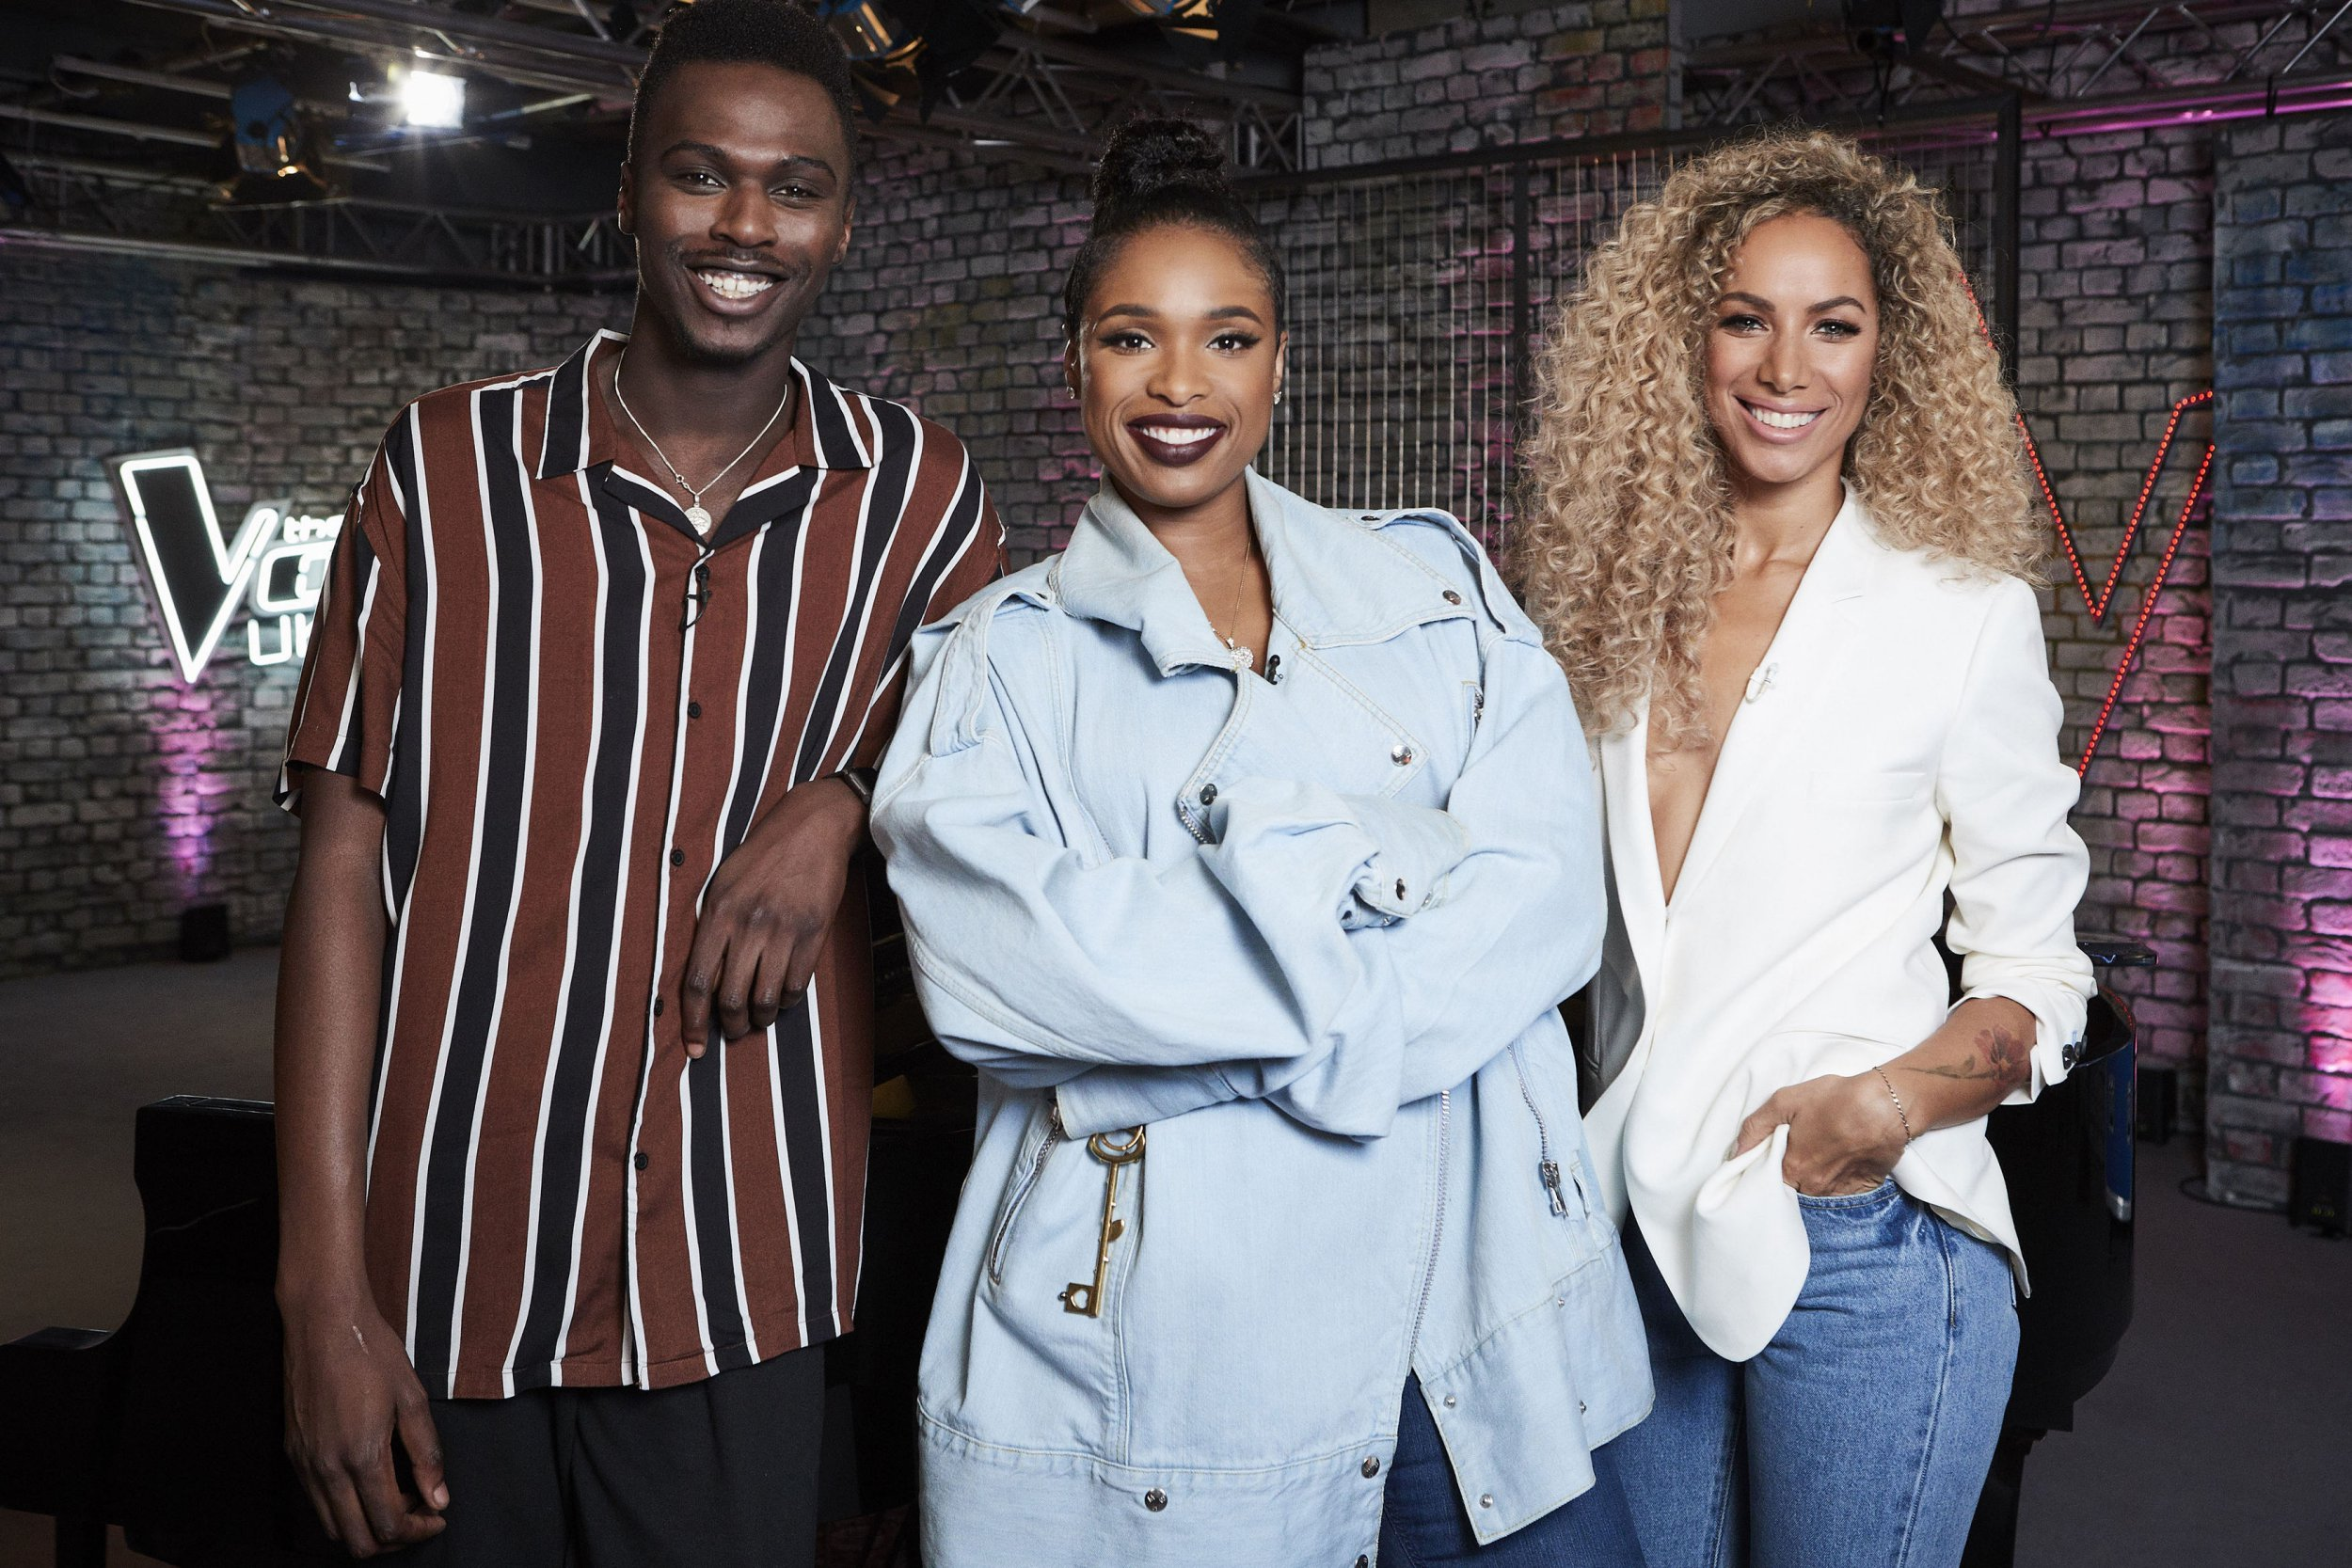 Undated handout photo issued by ITV of Jennifer Hudson (centre) will be joined by Mo Jamil (left) and Leona Lewis (right) as guest mentors on The Voice UK. PRESS ASSOCIATION Photo. Issue date: Monday February 19, 2018. See PA story SHOWBIZ Voice. Photo credit should read: ITV/PA Wire NOTE TO EDITORS: This handout photo may only be used in for editorial reporting purposes for the contemporaneous illustration of events, things or the people in the image or facts mentioned in the caption. Reuse of the picture may require further permission from the copyright holder.